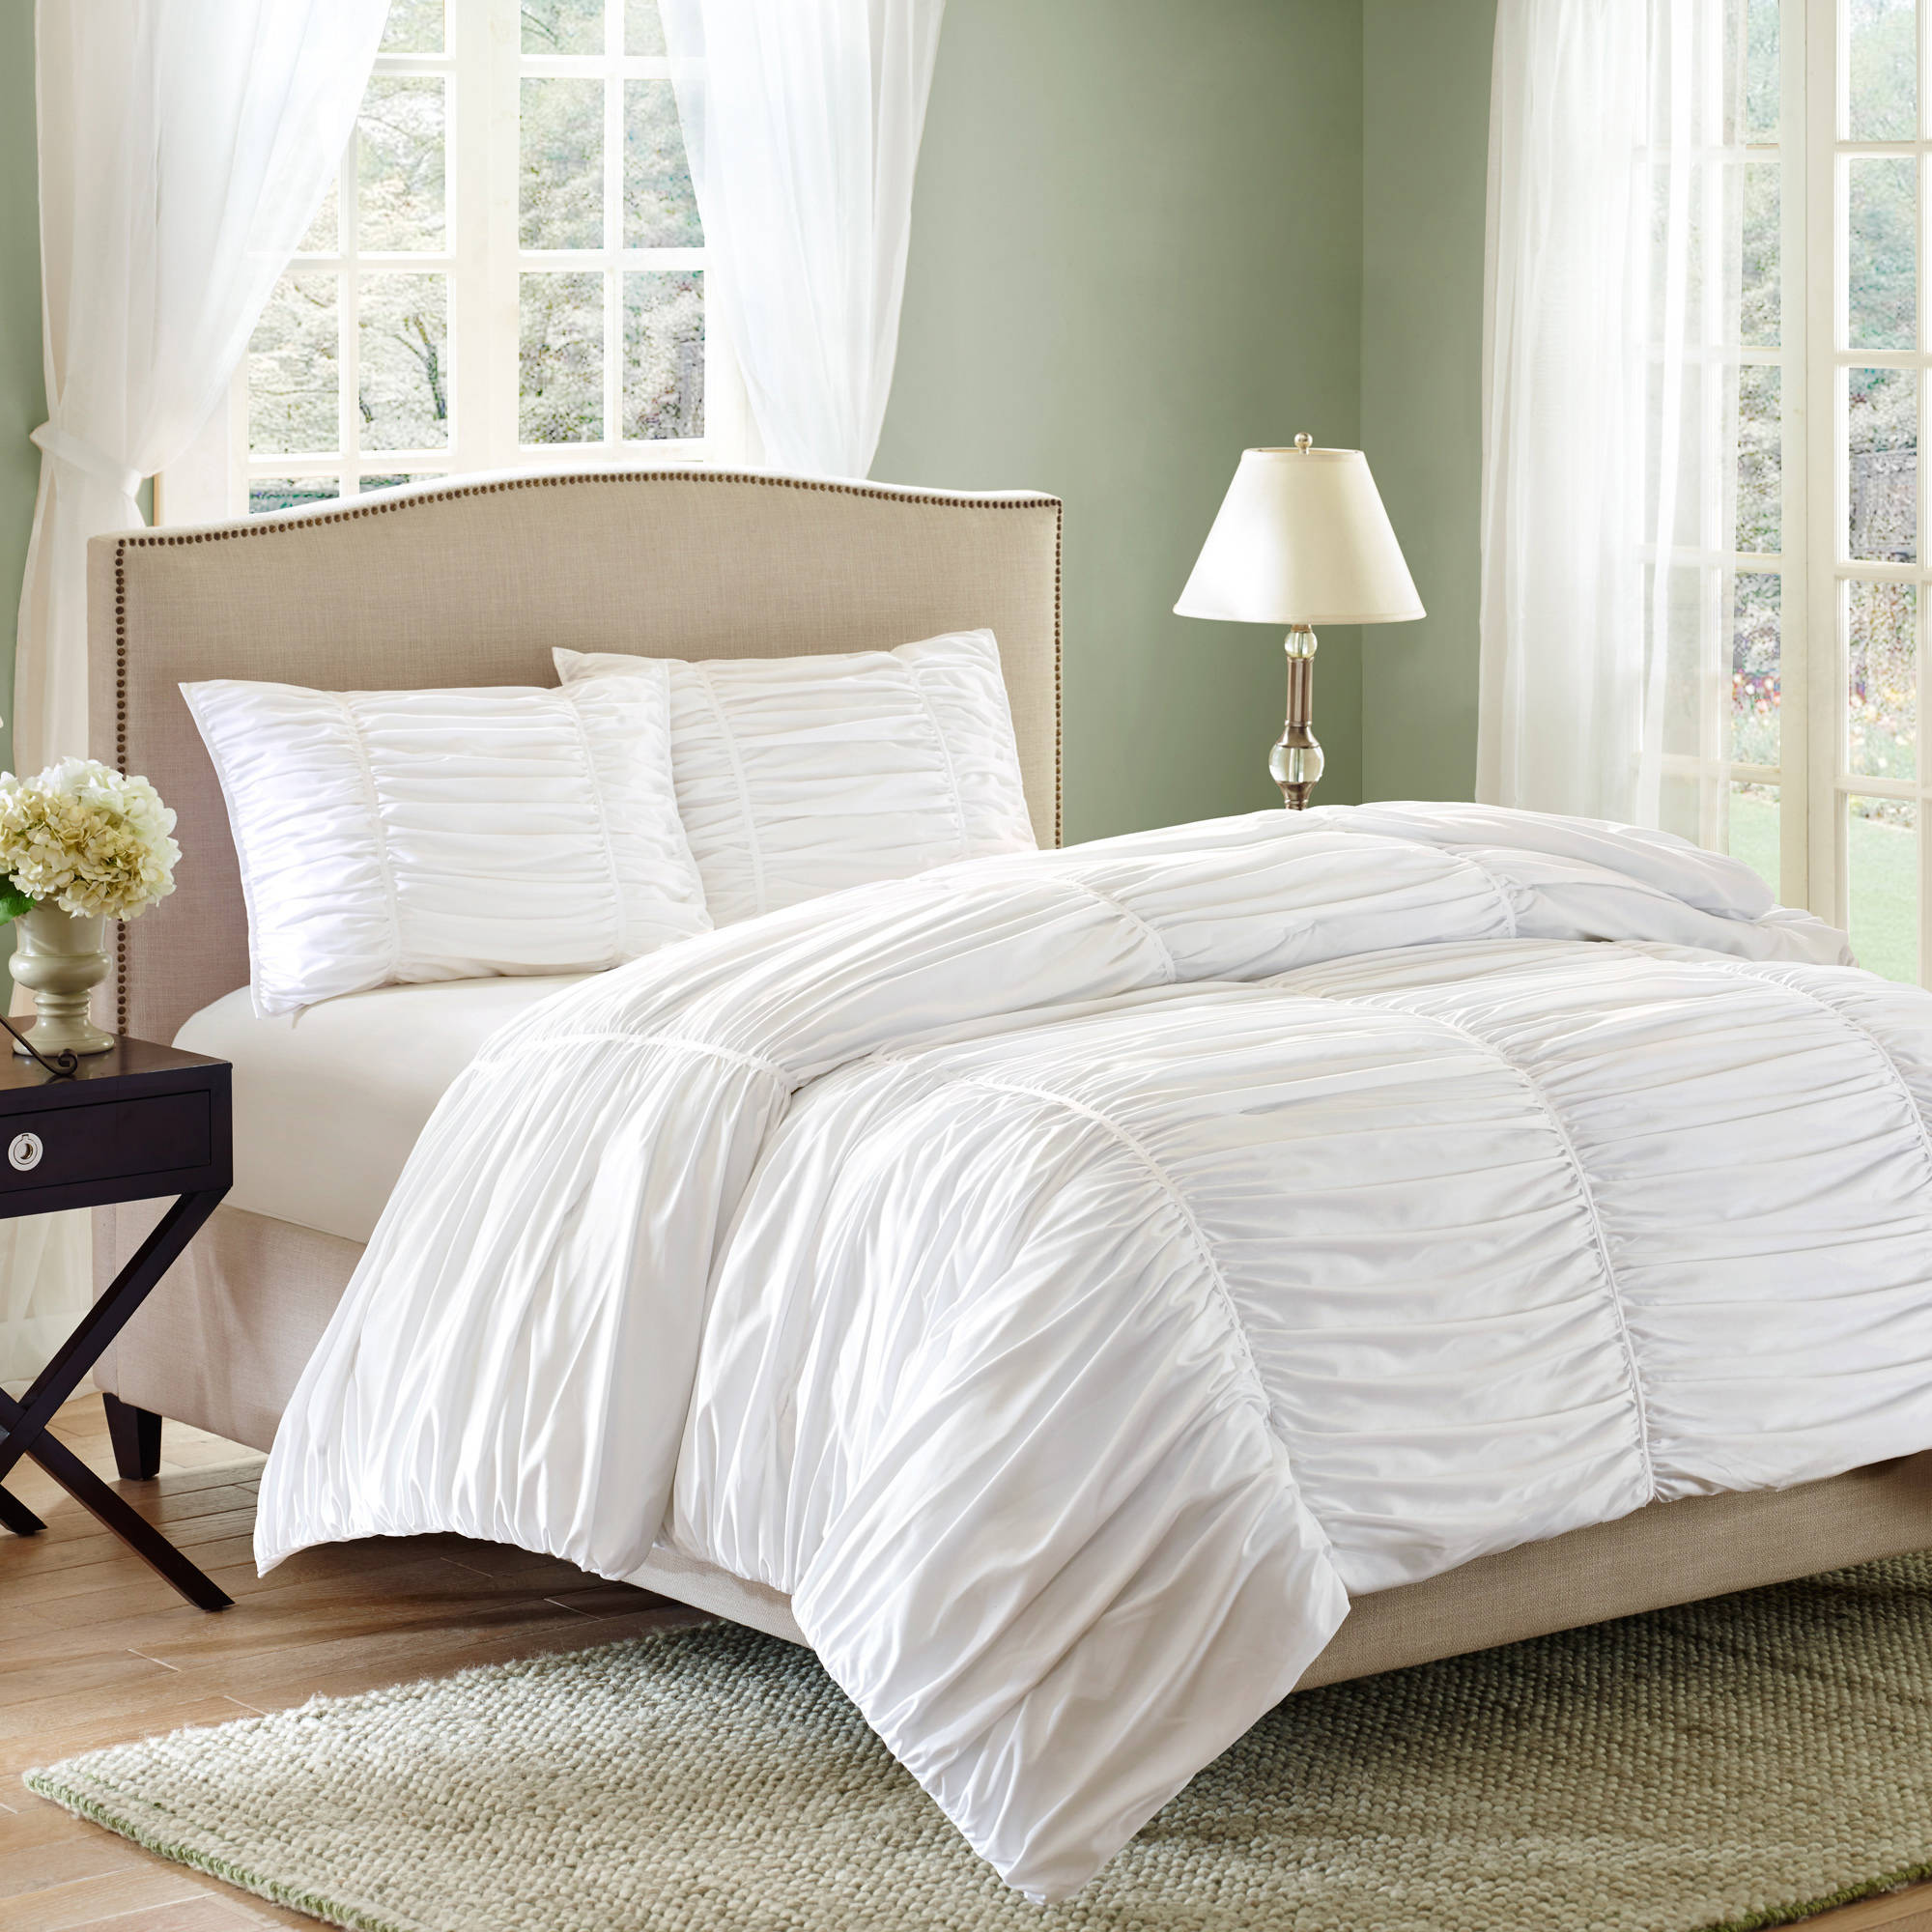 pin bedding comforter bed n sets things down linens comforters collections at